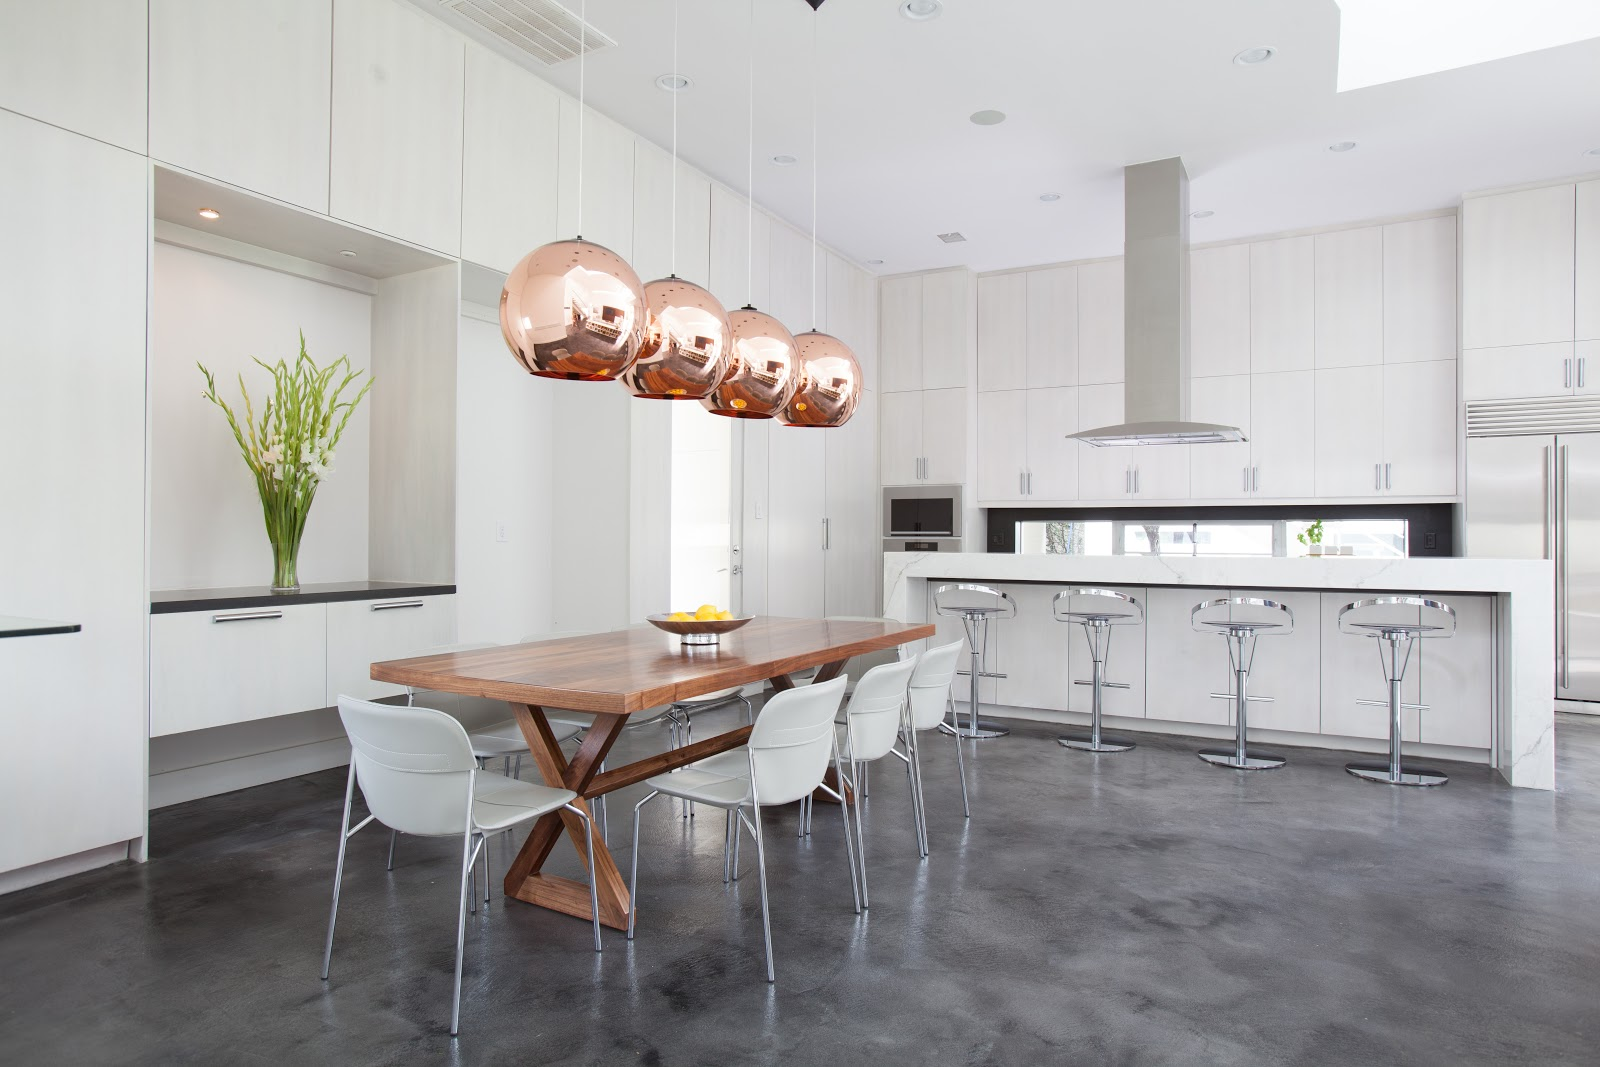 Minimalist bright white kitchen with copper lighting, mixed metals and concrete floors - Laura U Interior Design